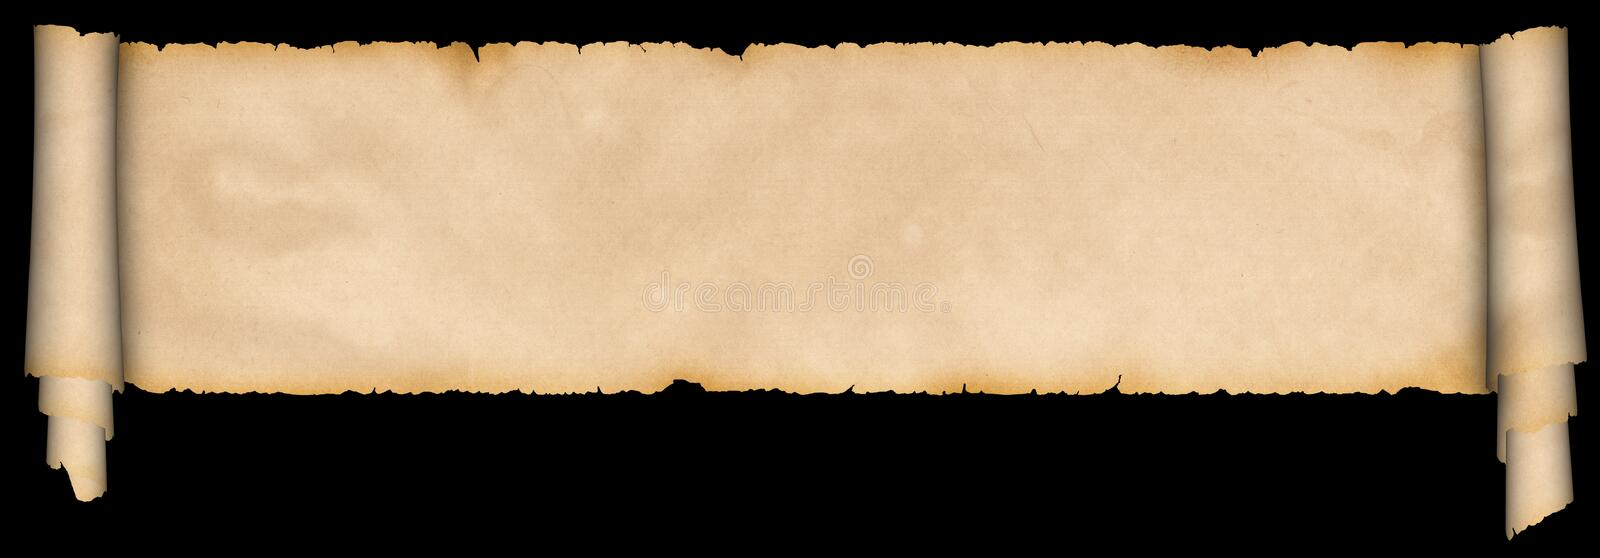 Medieval scroll of parchment. royalty free stock photos